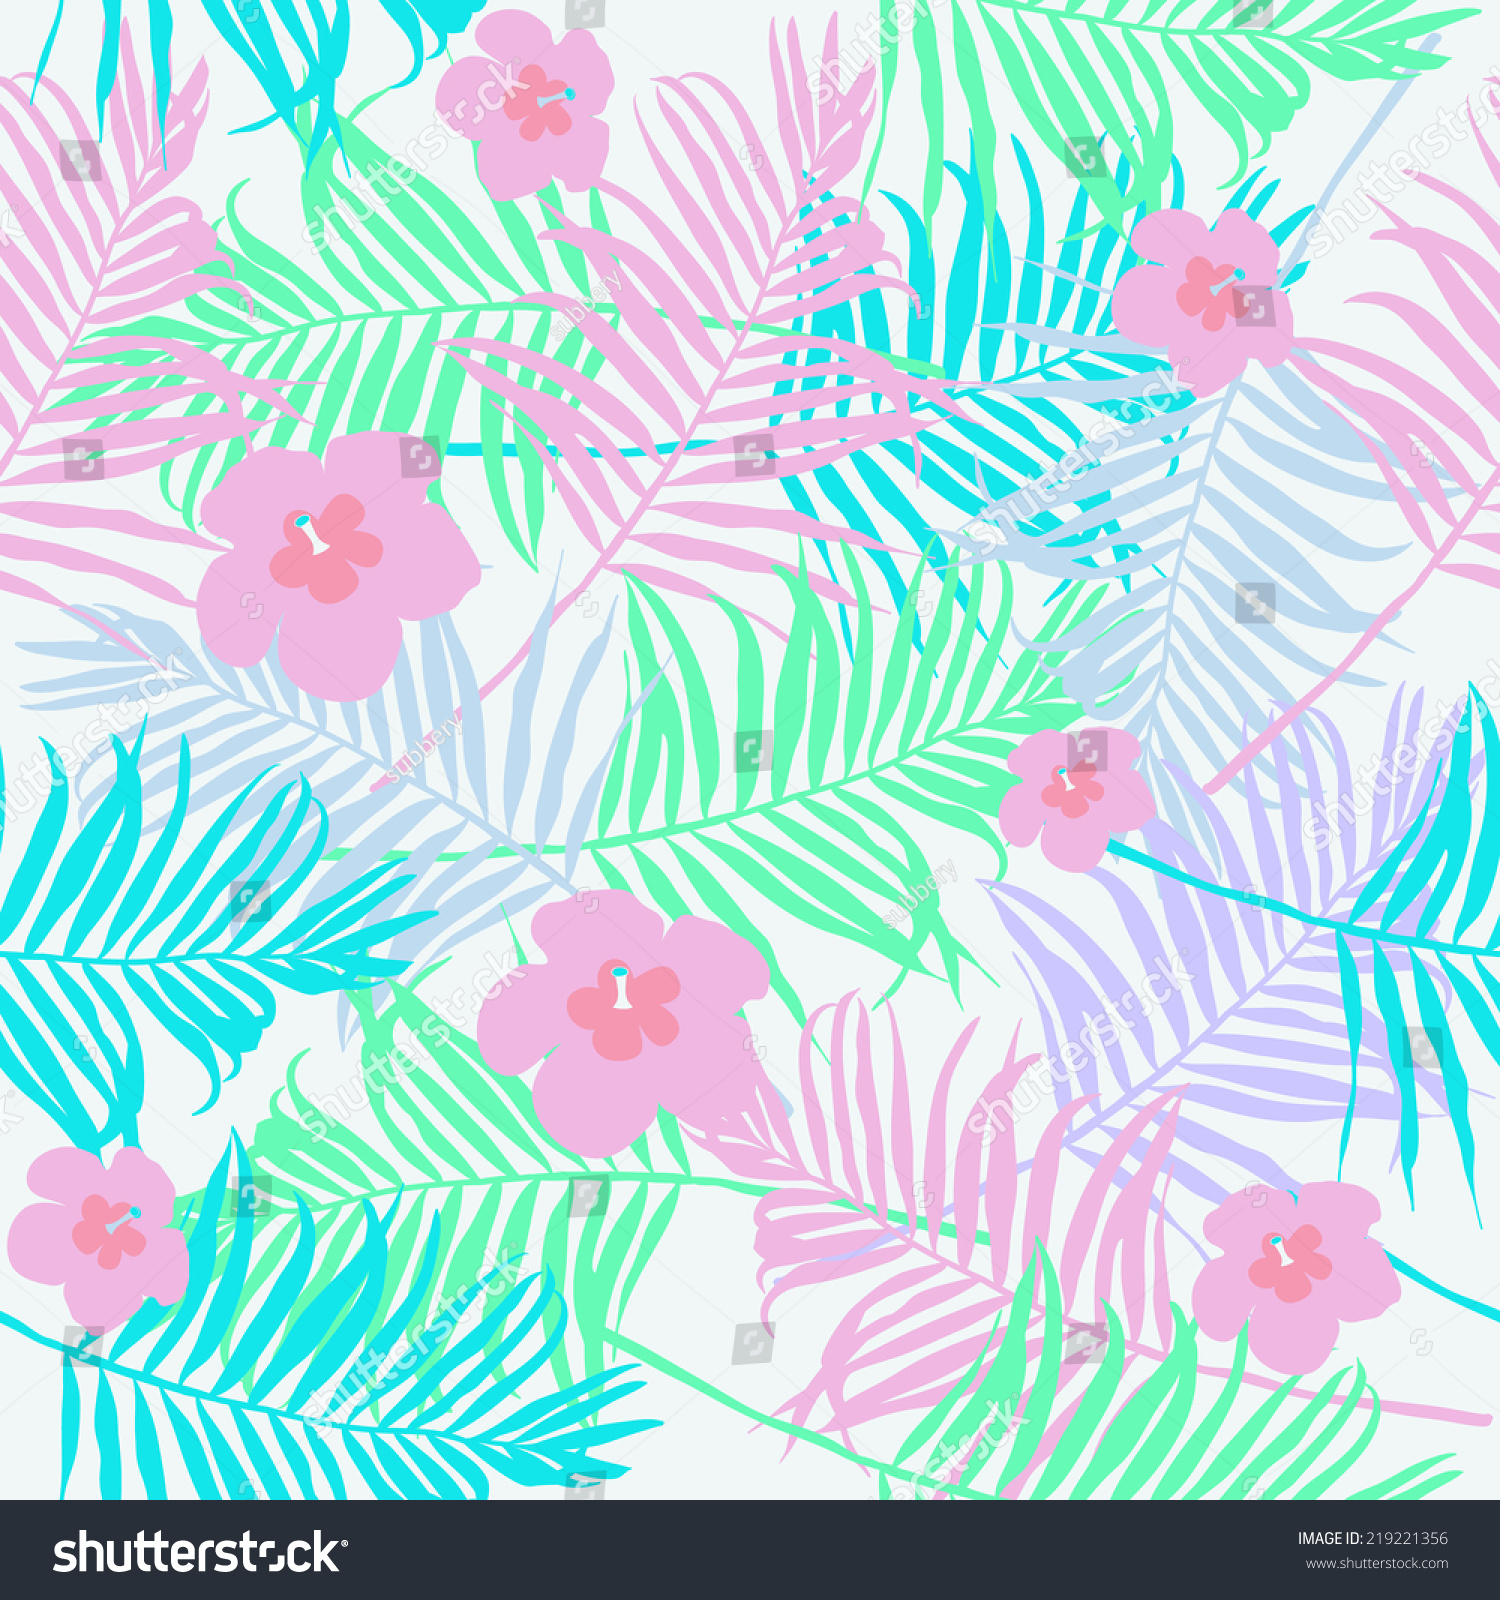 Pastel floral background tumblr